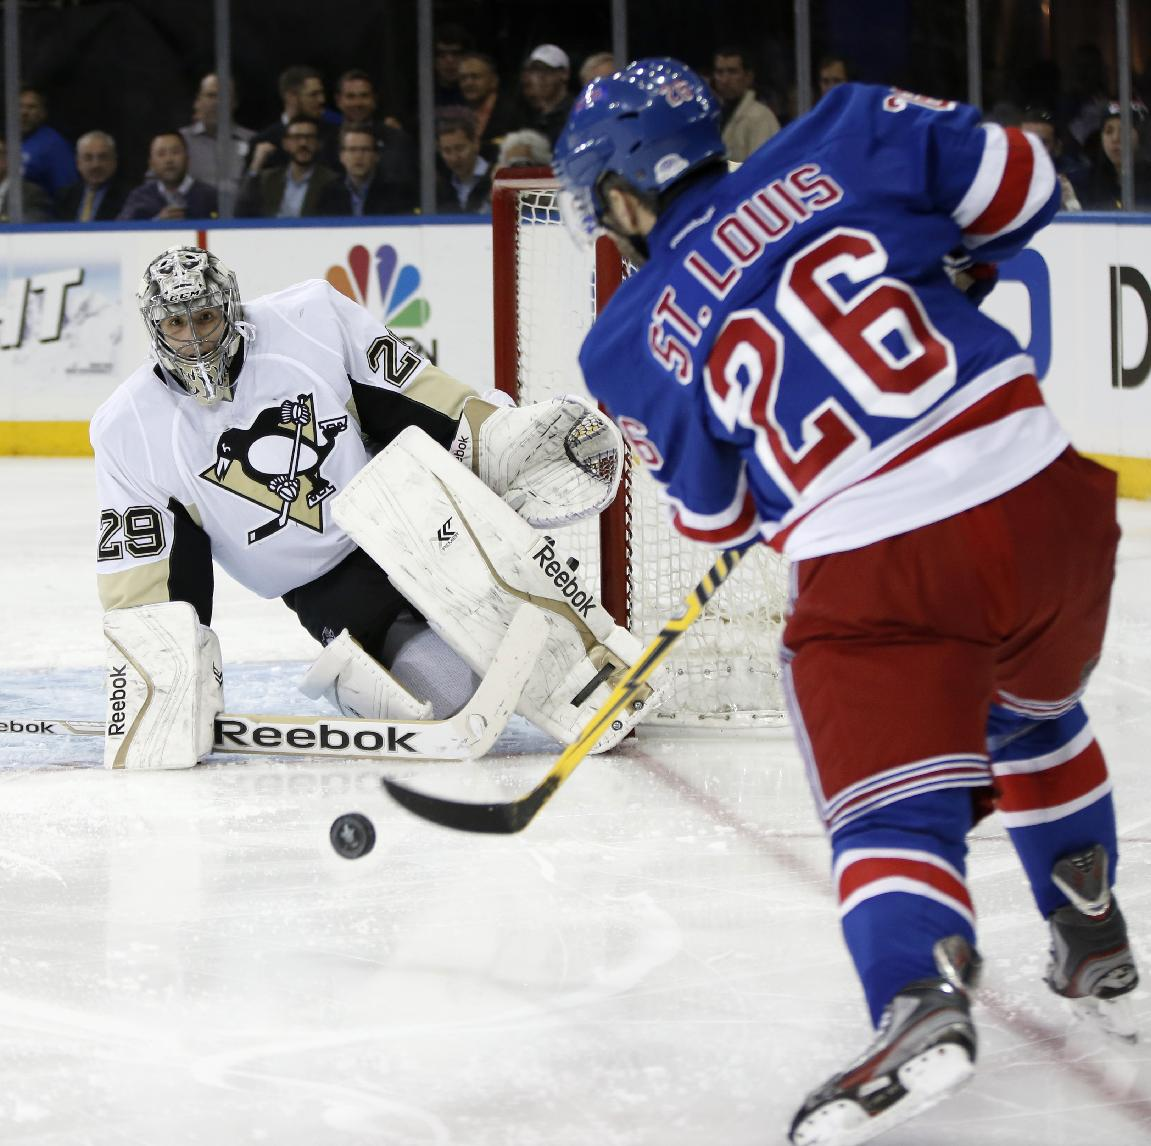 New York Rangers right wing Martin St. Louis (26) takes a shot on Pittsburgh Penguins goalie Marc-Andre Fleury (29) in the second period of their second-round NHL Stanley Cup hockey playoff game at Madison Square Garden in New York, Monday, May 5, 2014